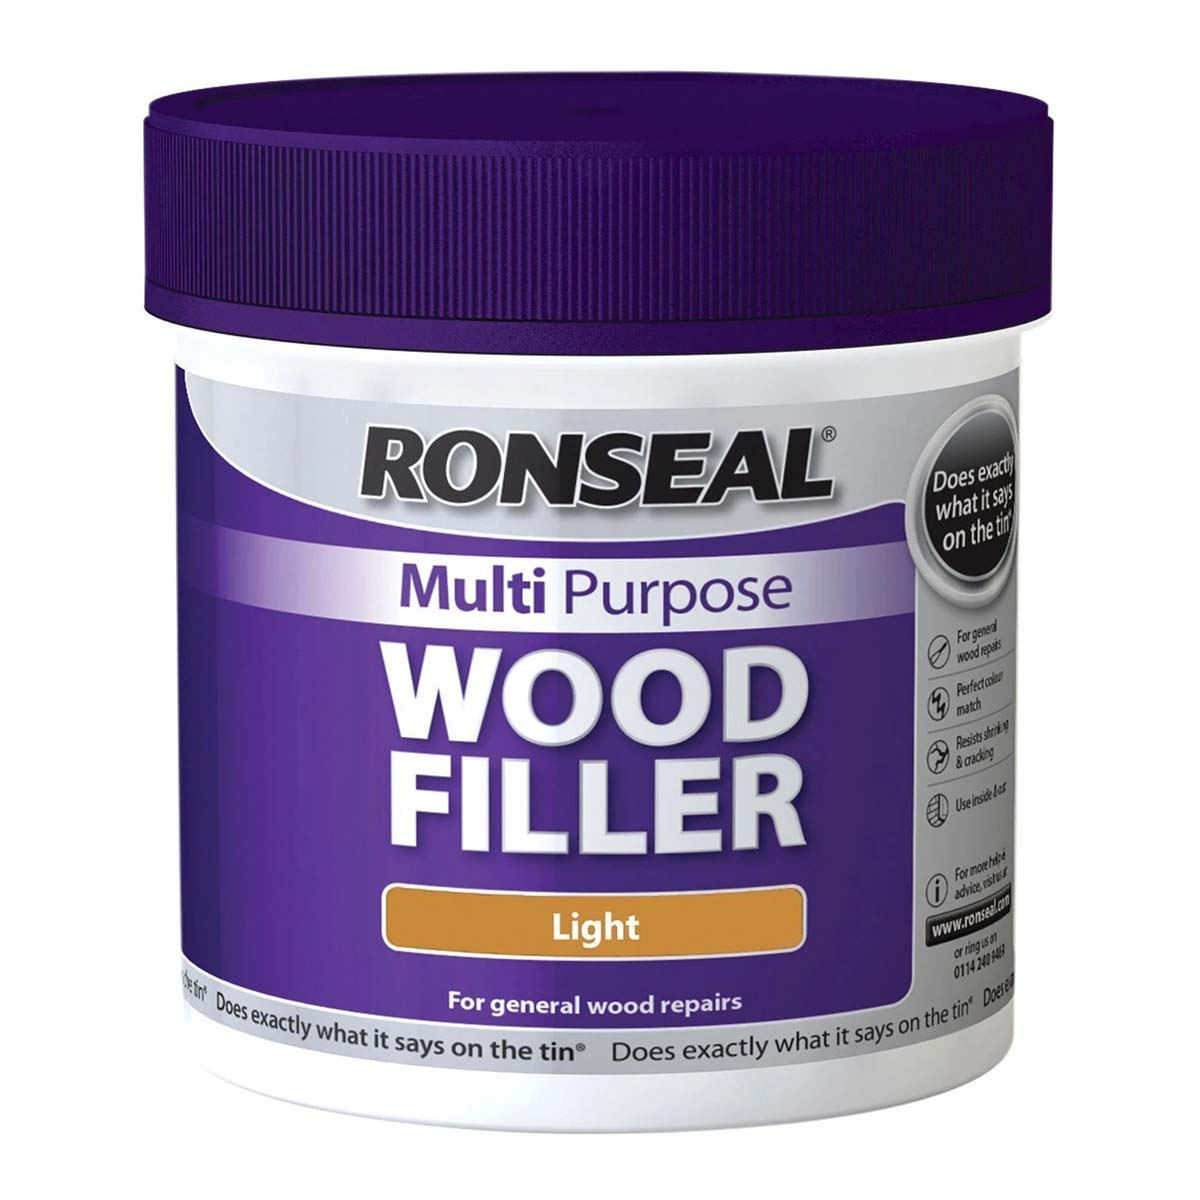 Ronseal Multi Purpose Wood Filler Light 250G (34746)